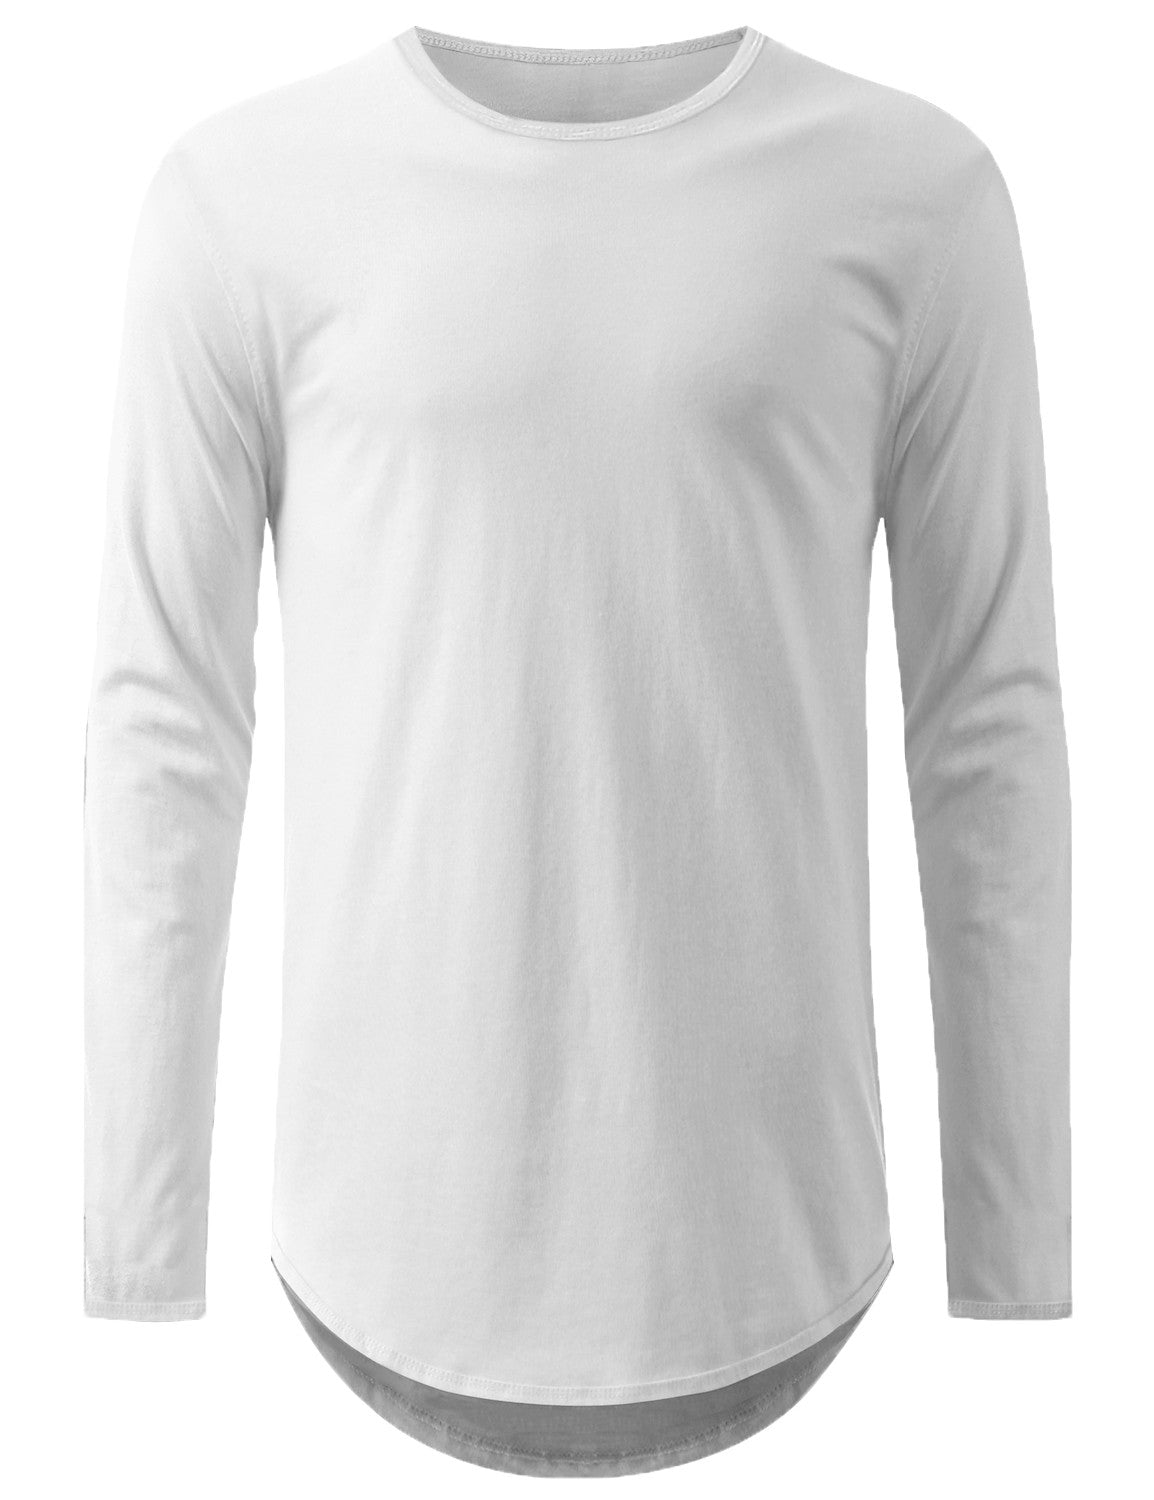 WHITE Lightweight Basic Long Sleeve Tshirt - URBANCREWS